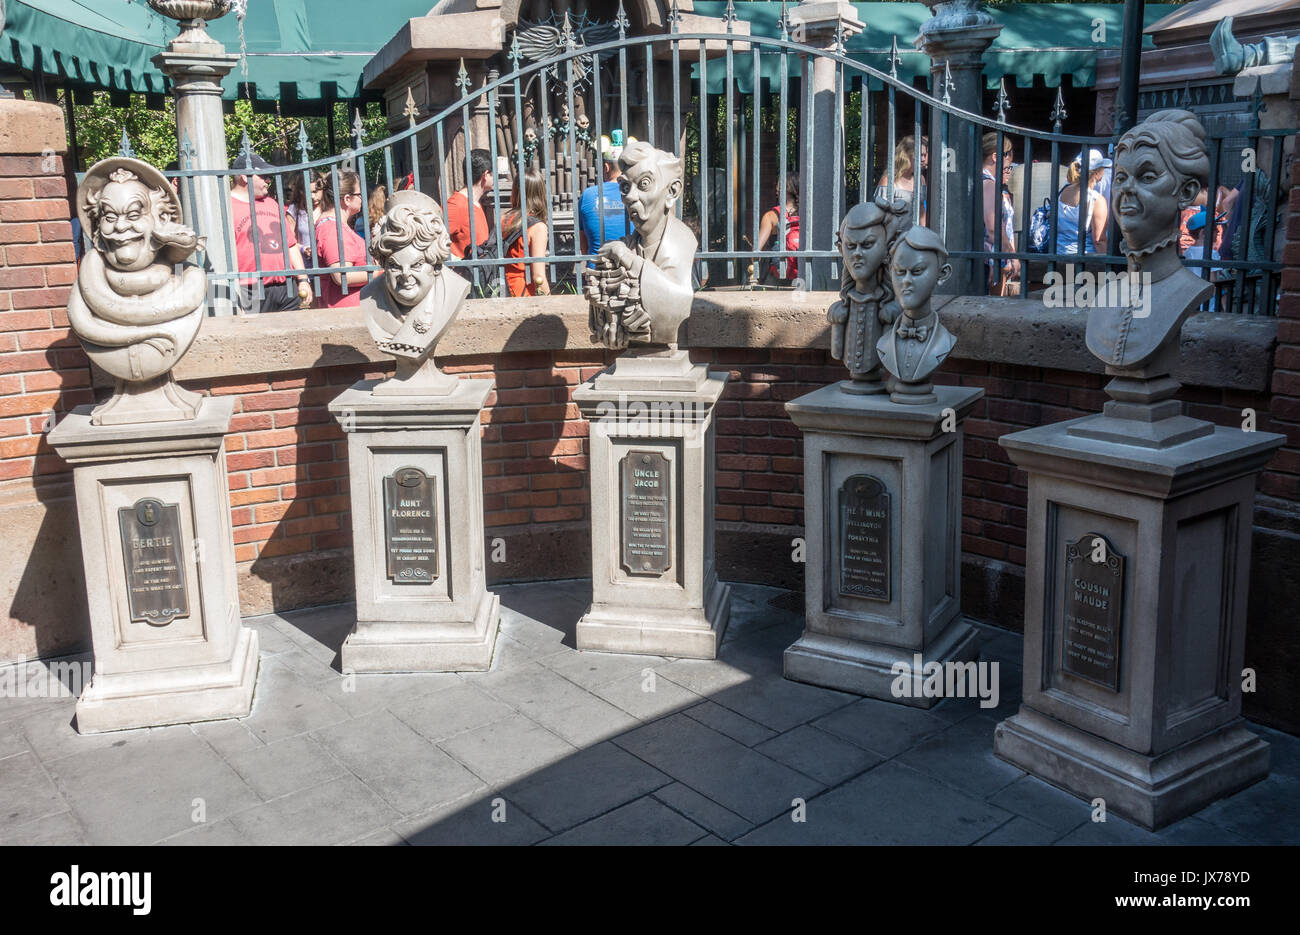 Dread Family Busts in the queue for the Haunted Mansion in Magic Kingdom, Walt Disney World, Orlando, Florida. - Stock Image